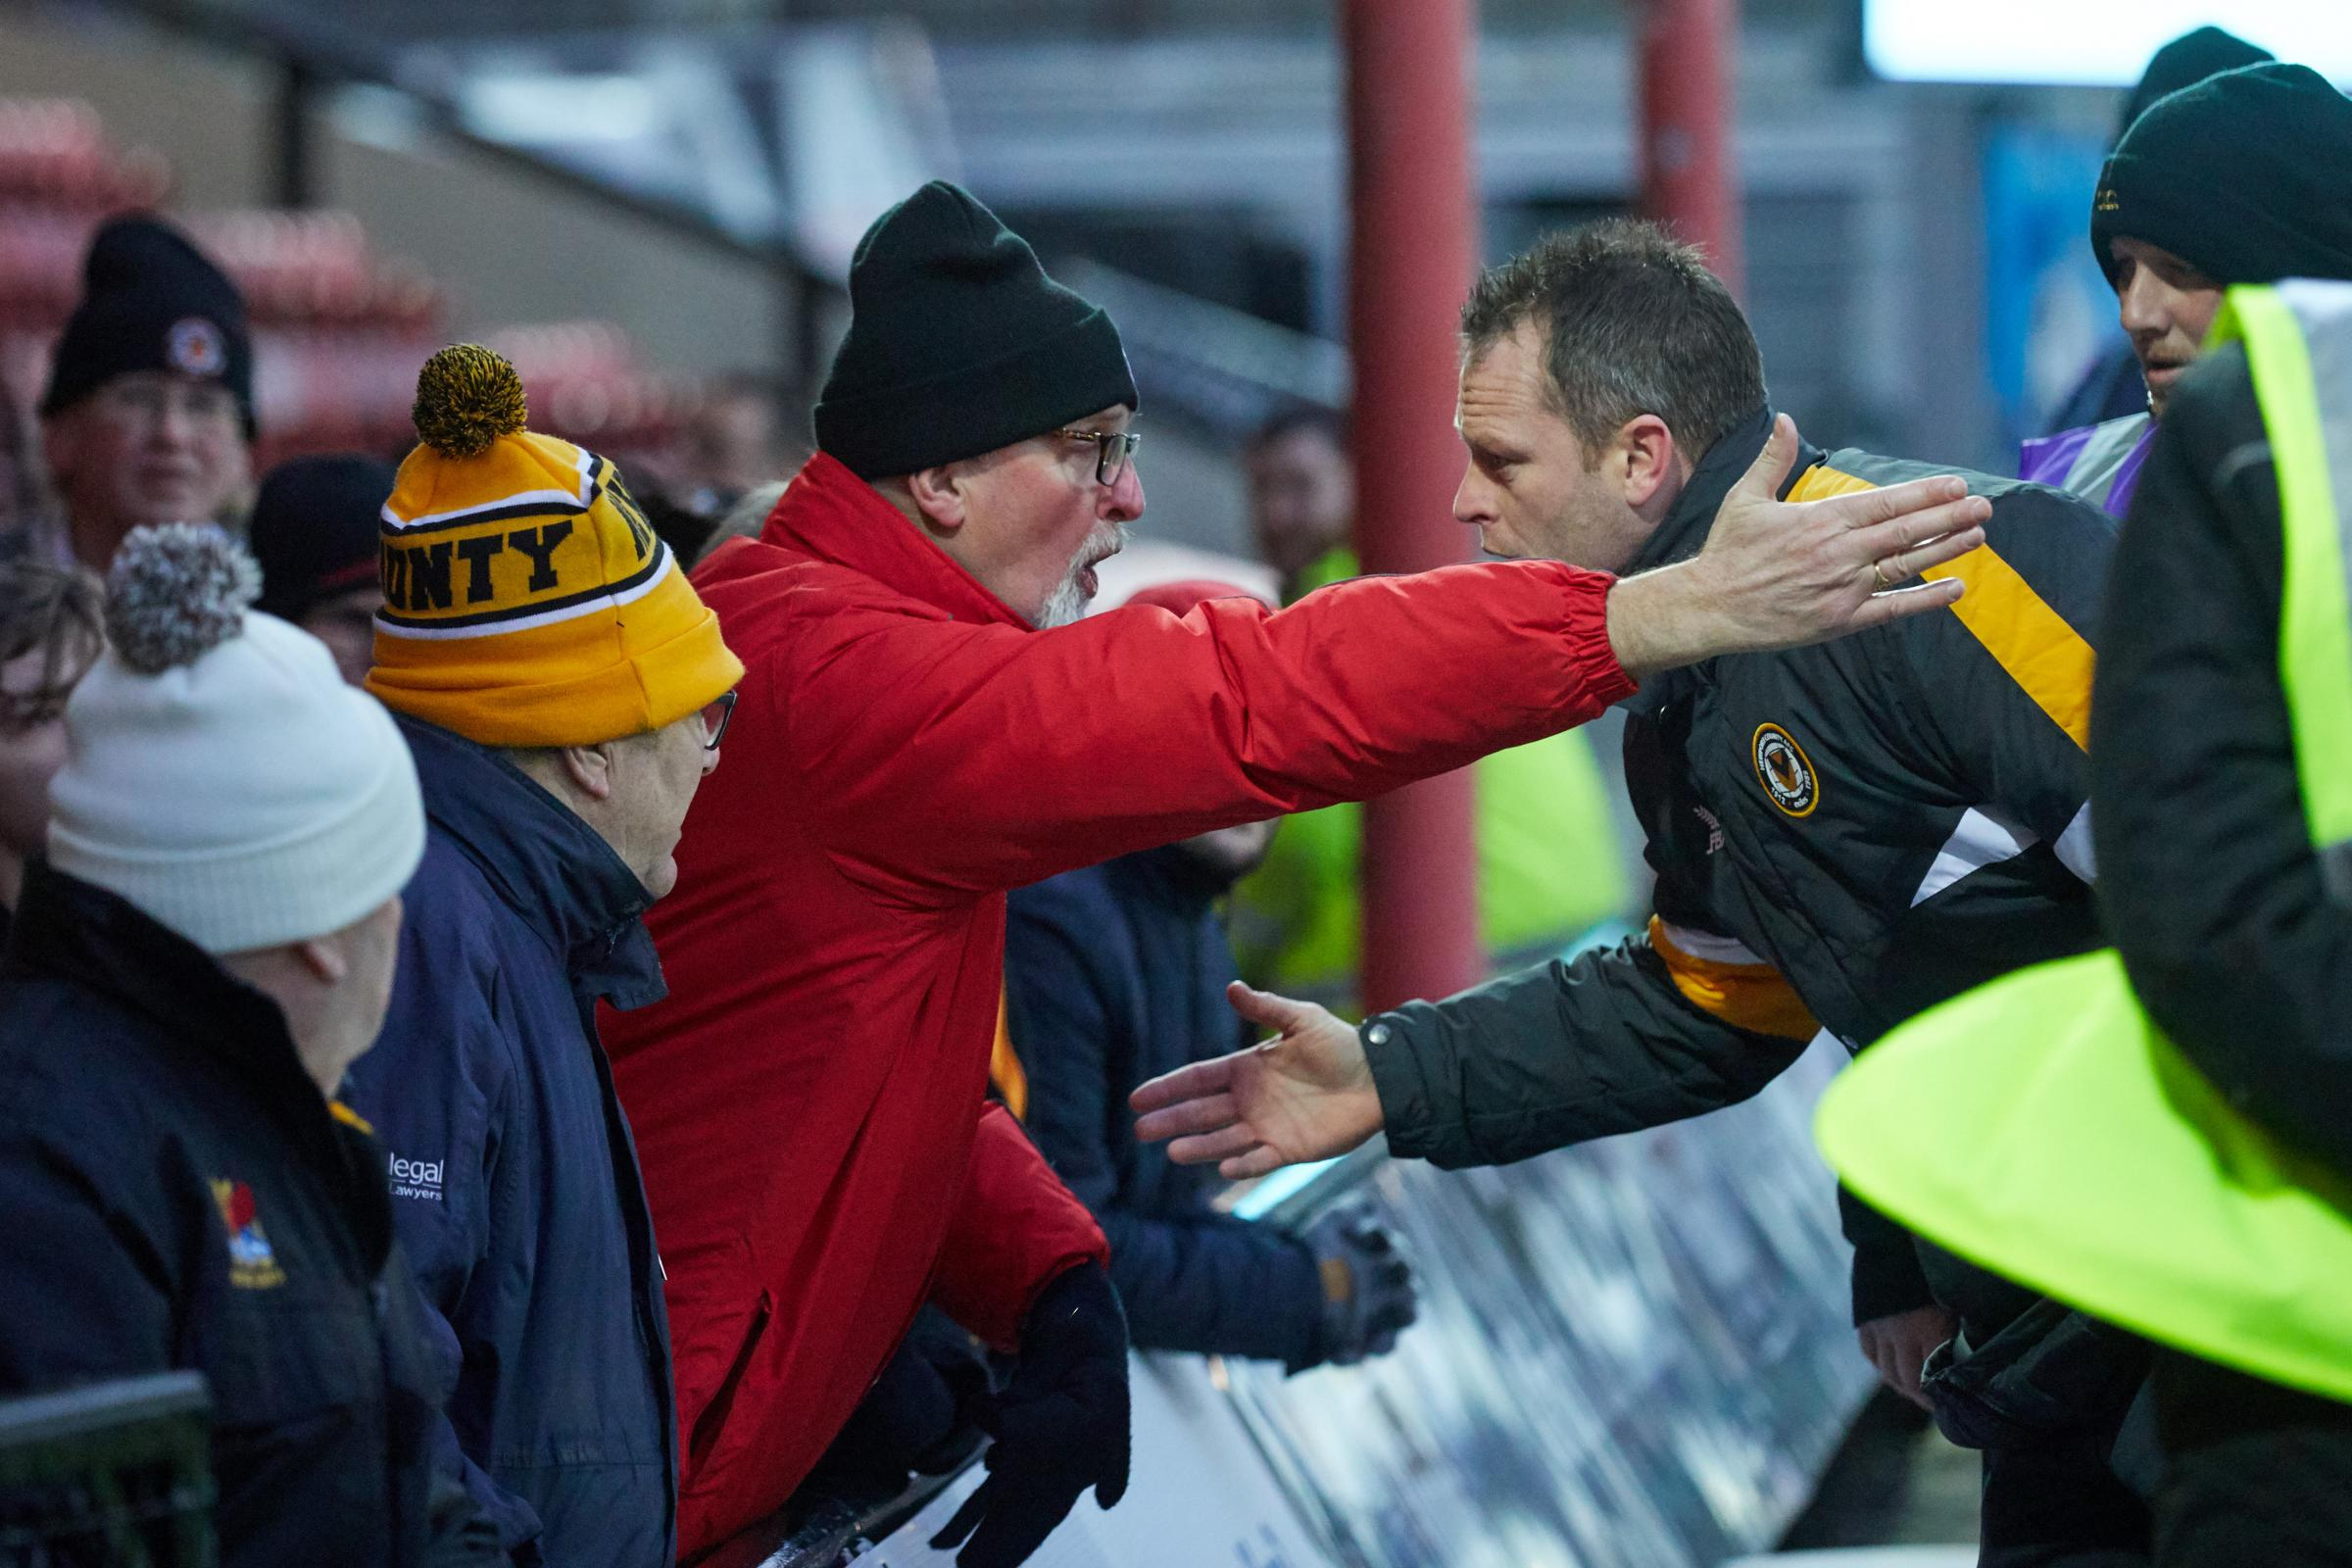 DISAGREEMENT: Newport County manager Michael Flynn, right, discusses his team selection with an angry fan after today's defeat at Grimsby Town. Pictures: Huw Evans Agency